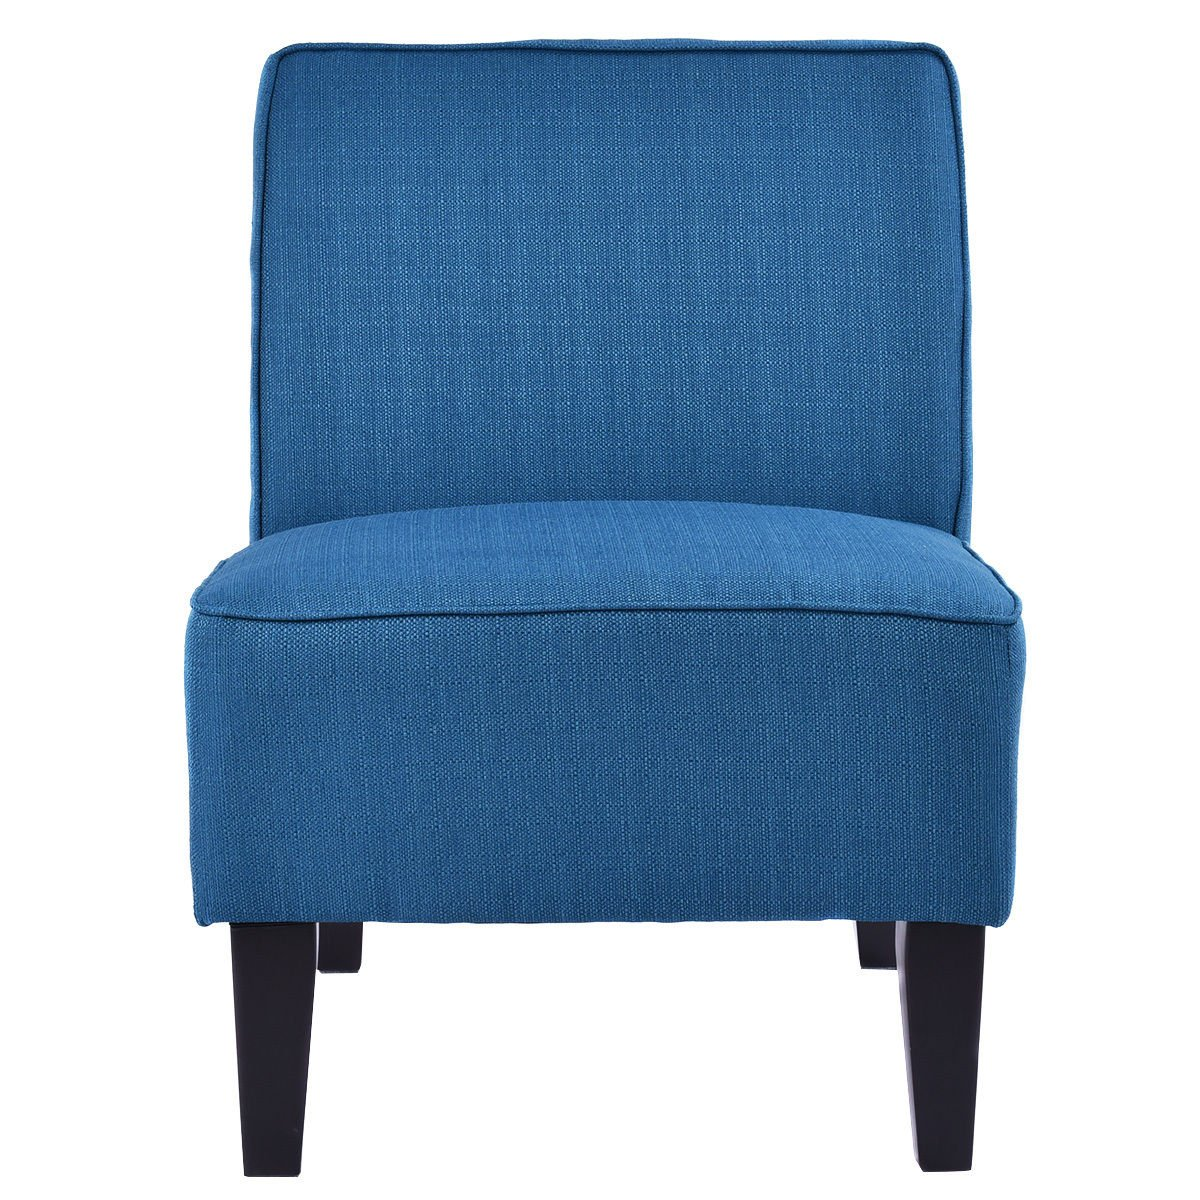 Amazon com giantex deco solids accent chair armless living room bedroom office contemporary blue kitchen dining